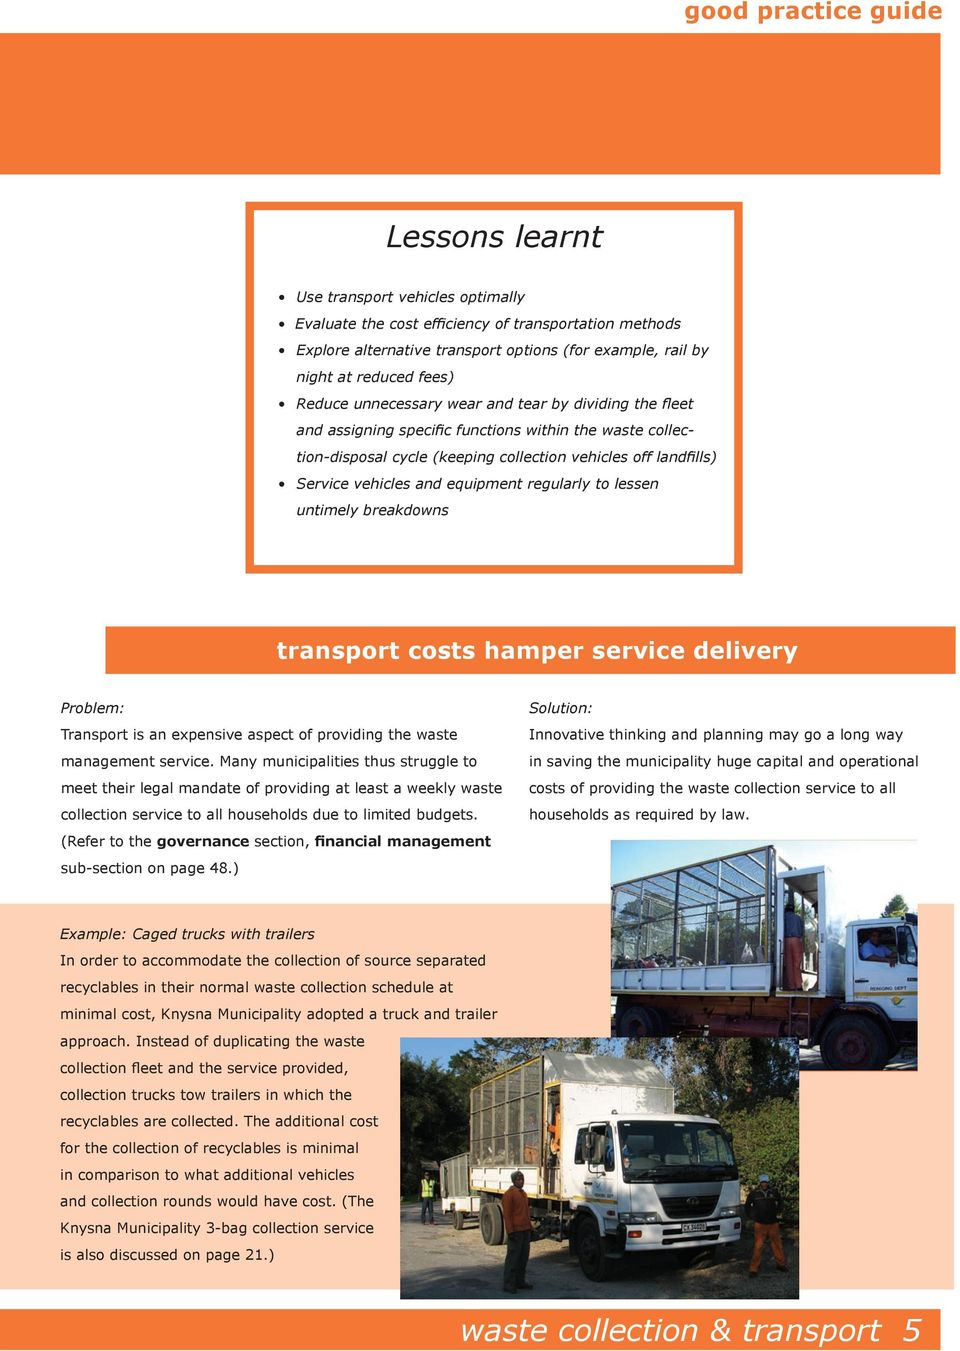 regularly to lessen untimely breakdowns transport costs hamper service delivery Transport is an expensive aspect of providing the waste management service.